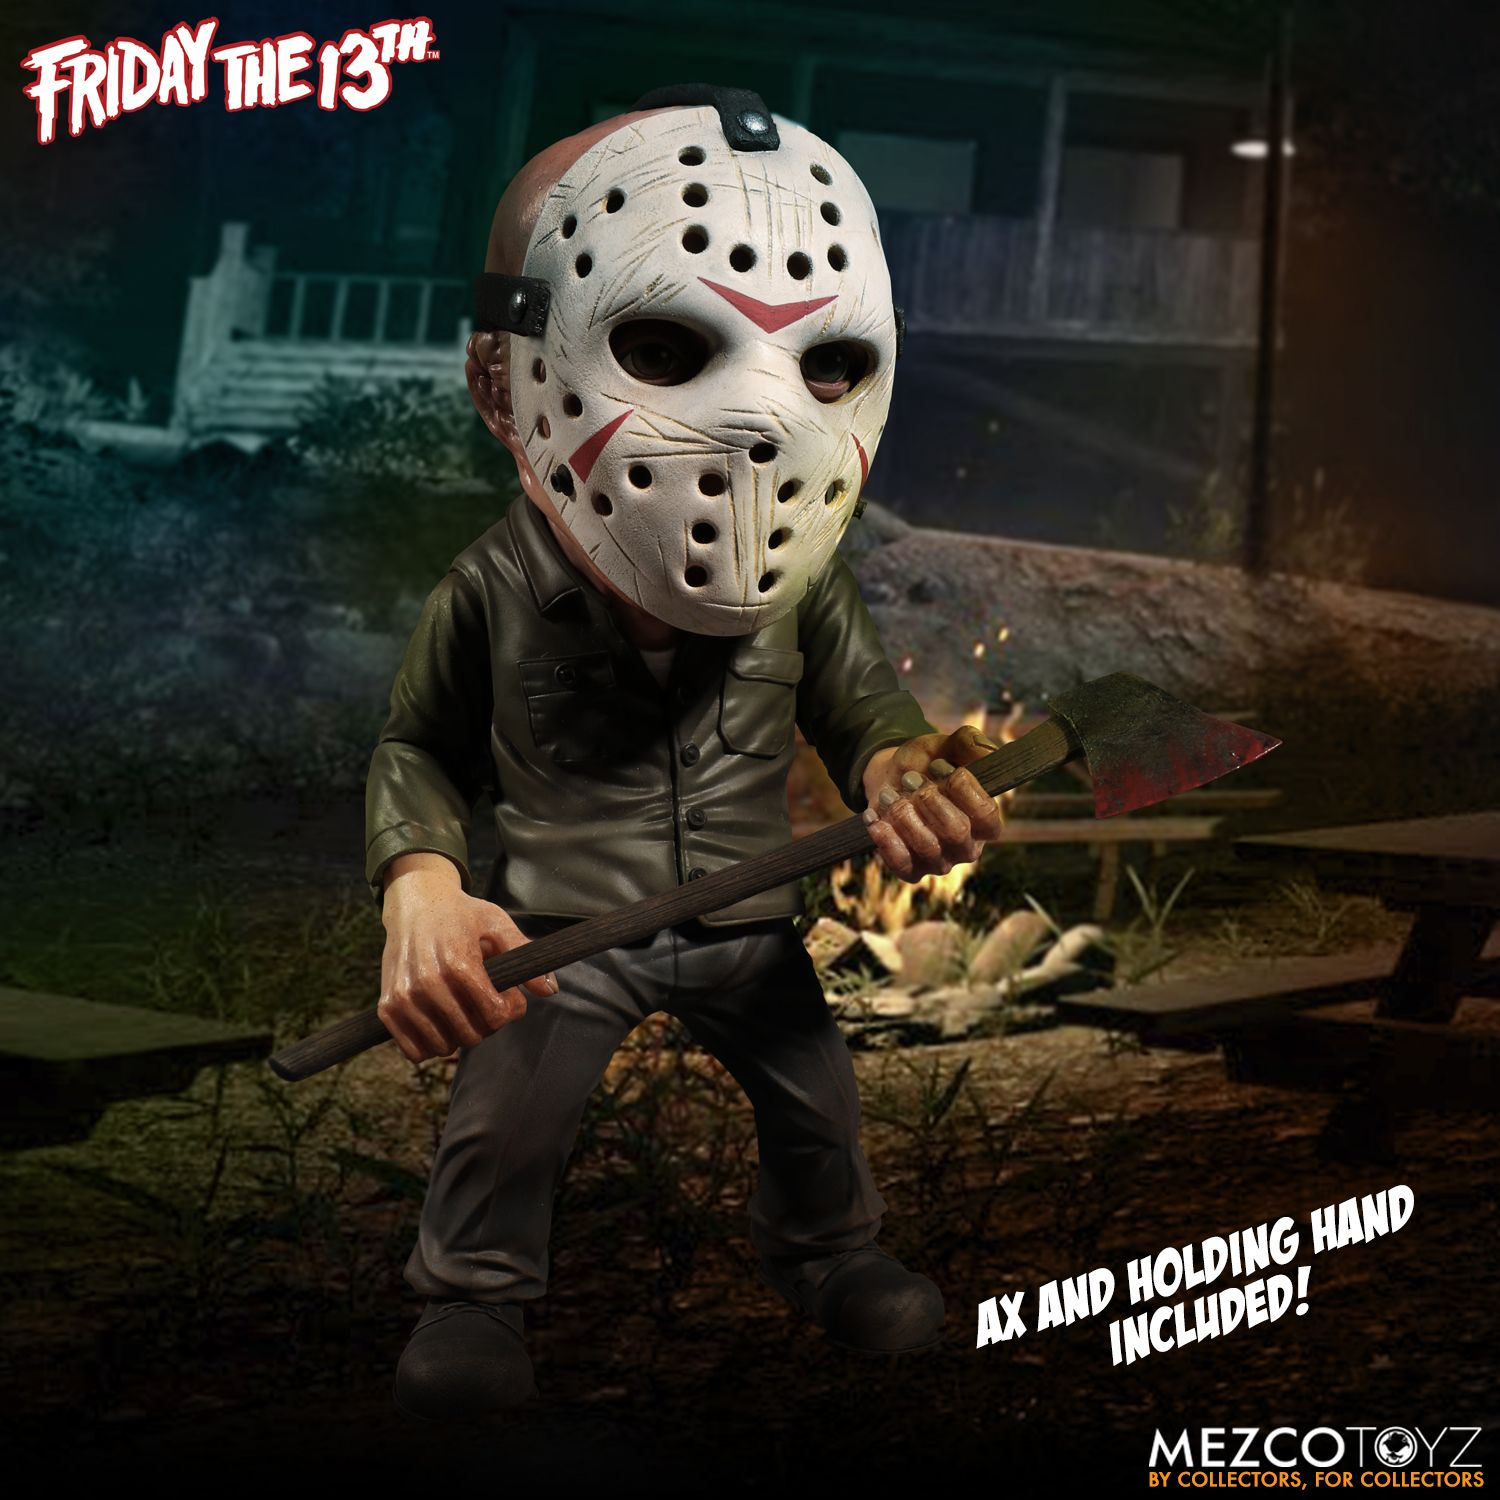 Mezco Stylized Friday the 13th Jason Voorhees Deluxe Figure